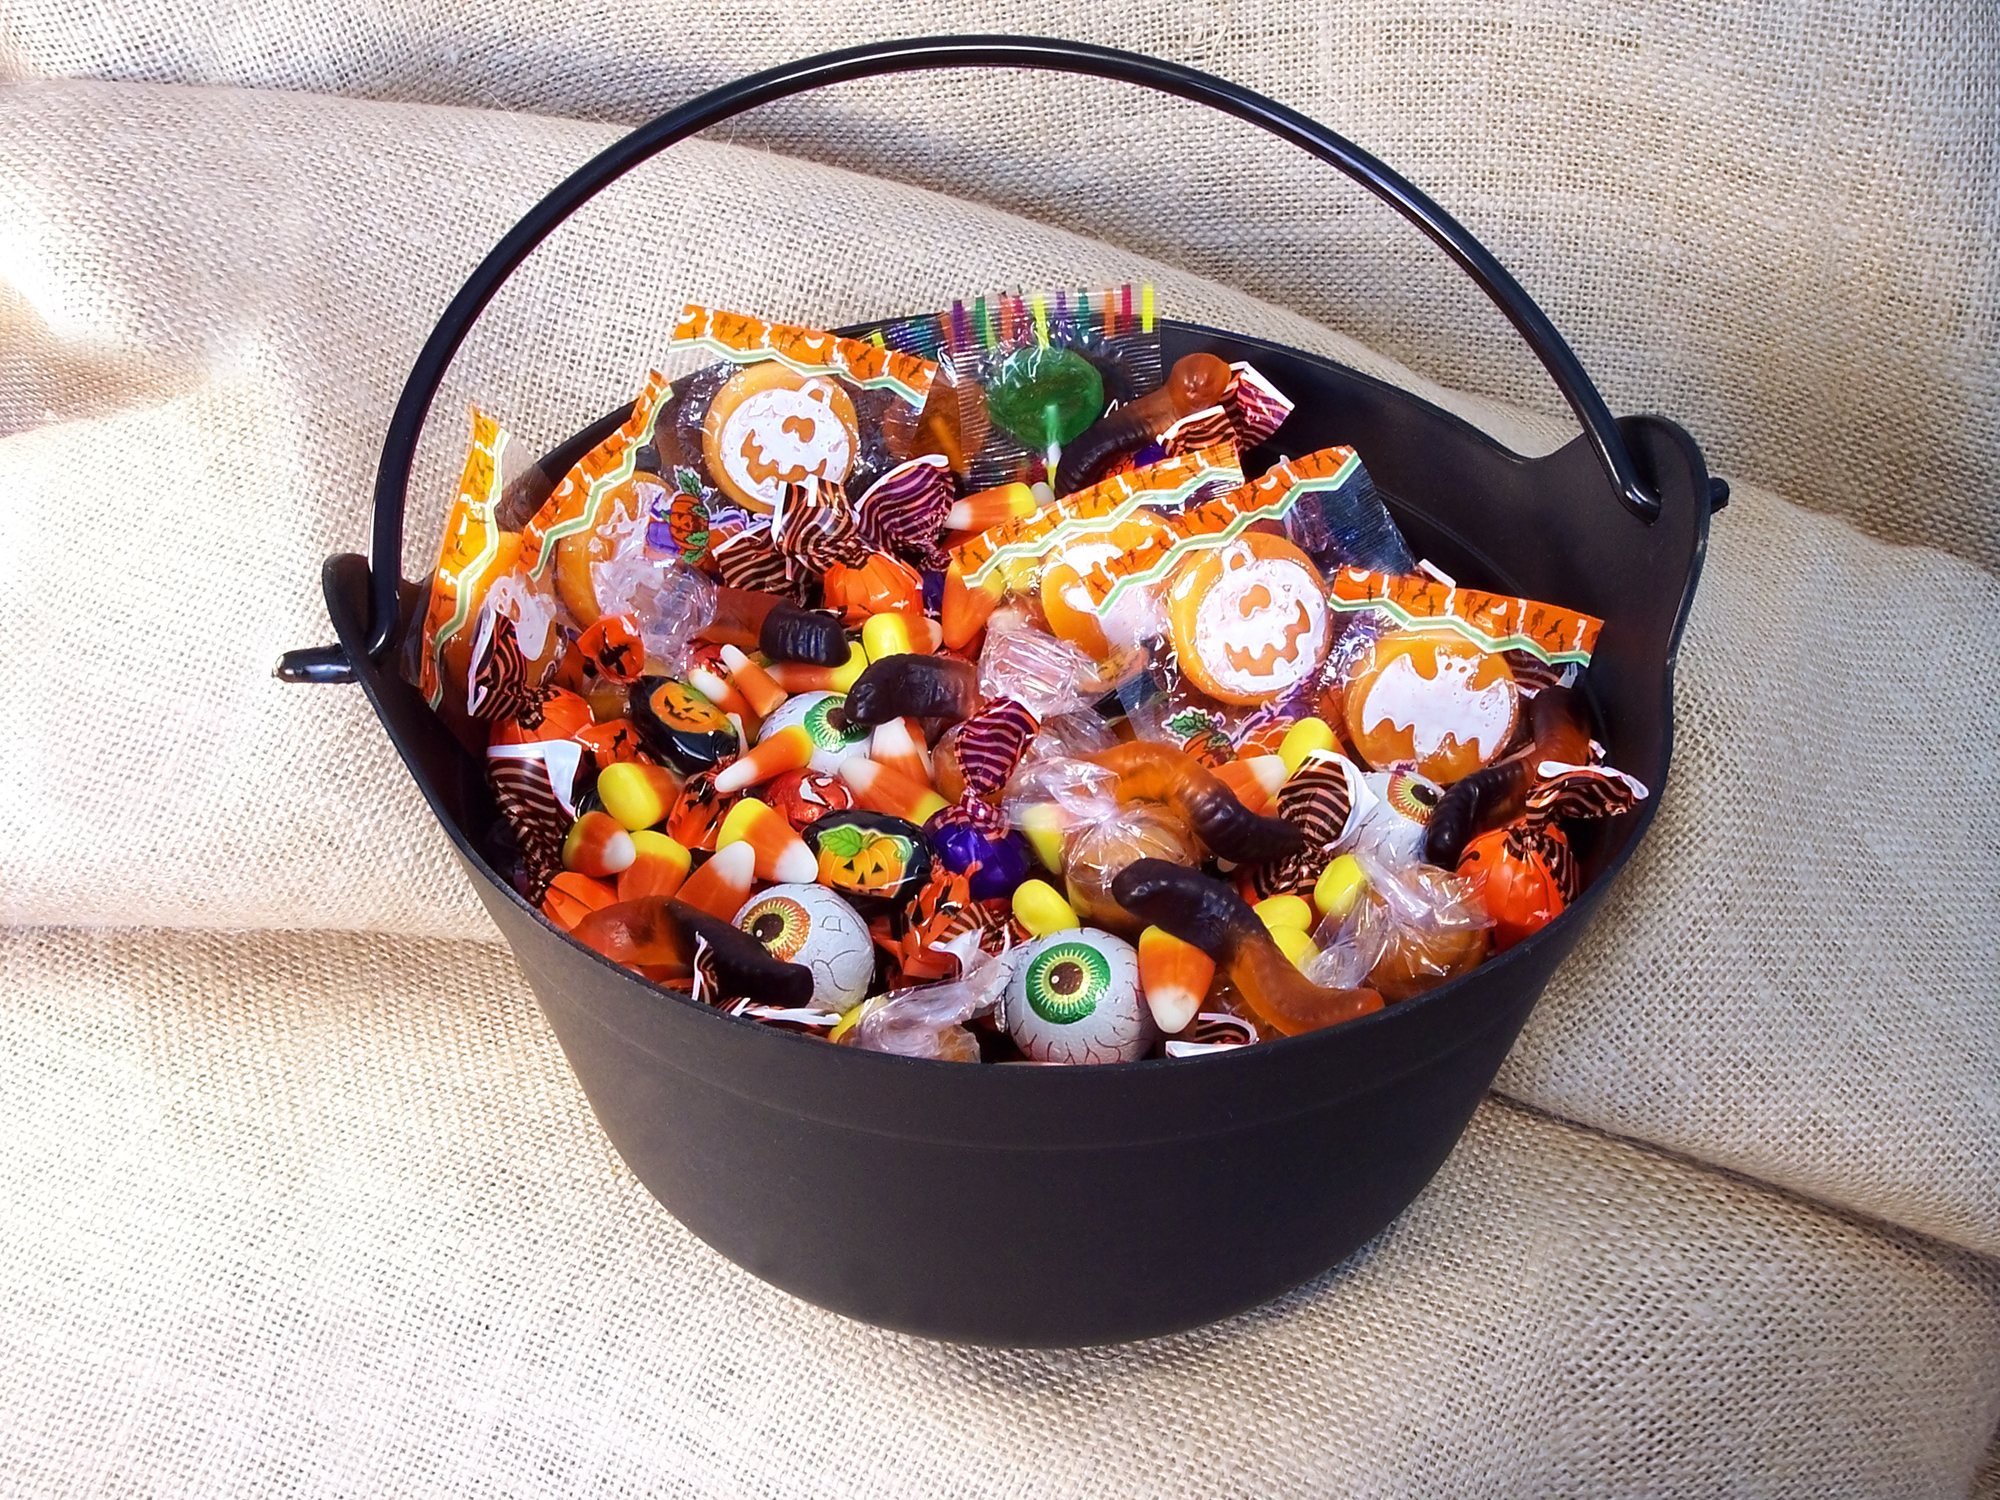 Bowl of Candy with wrappers